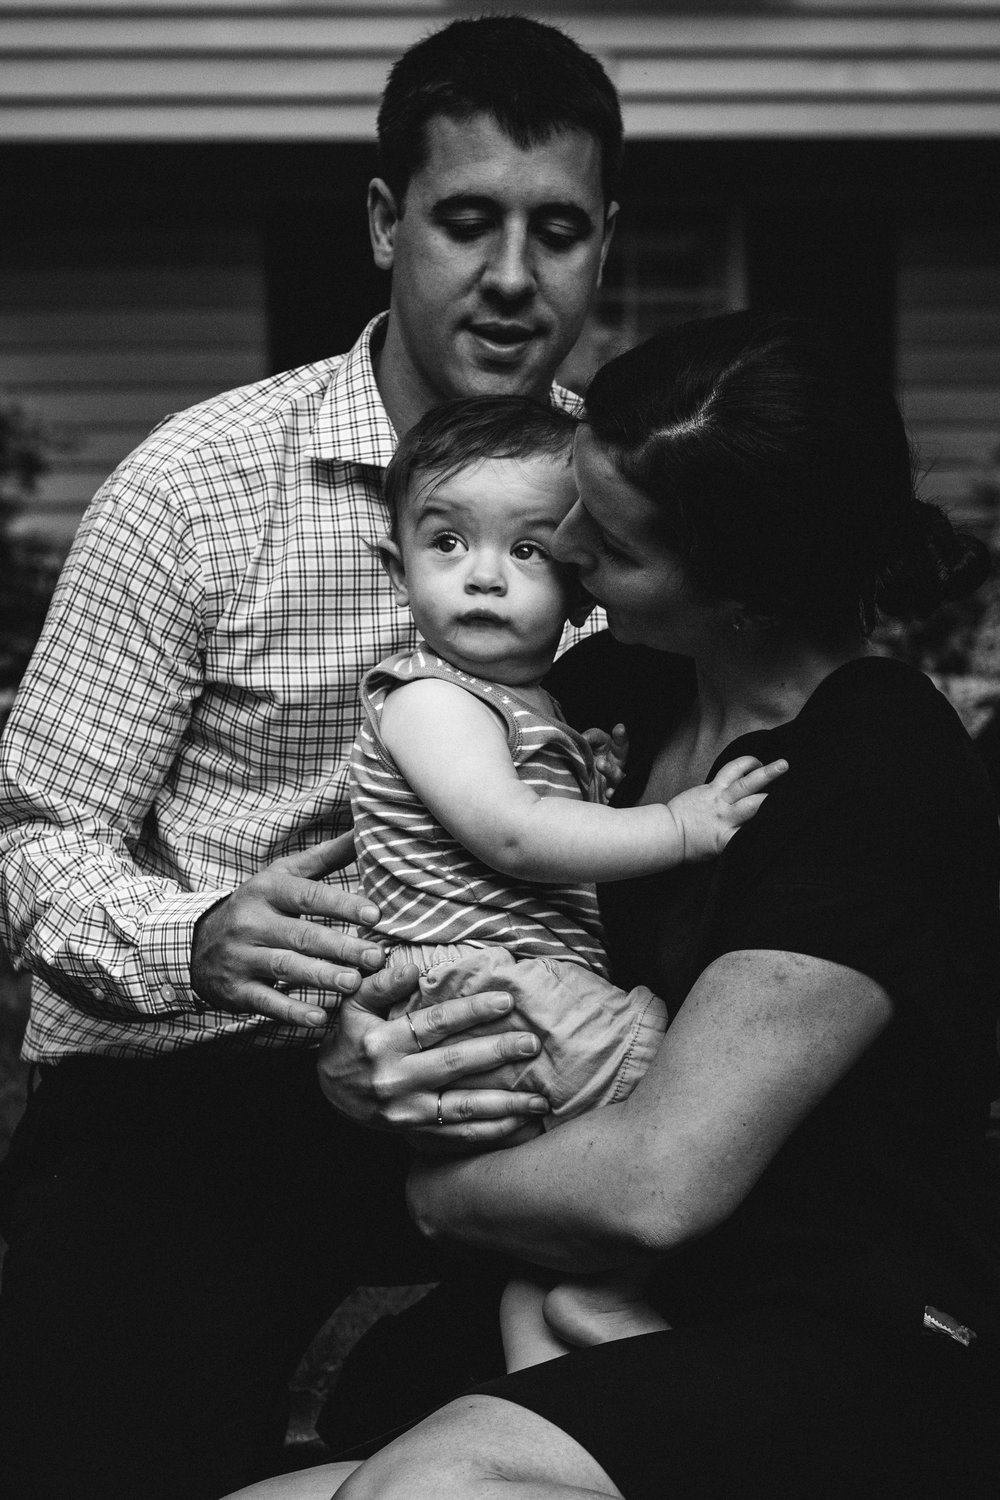 black and white photograph of parents cuddling baby son